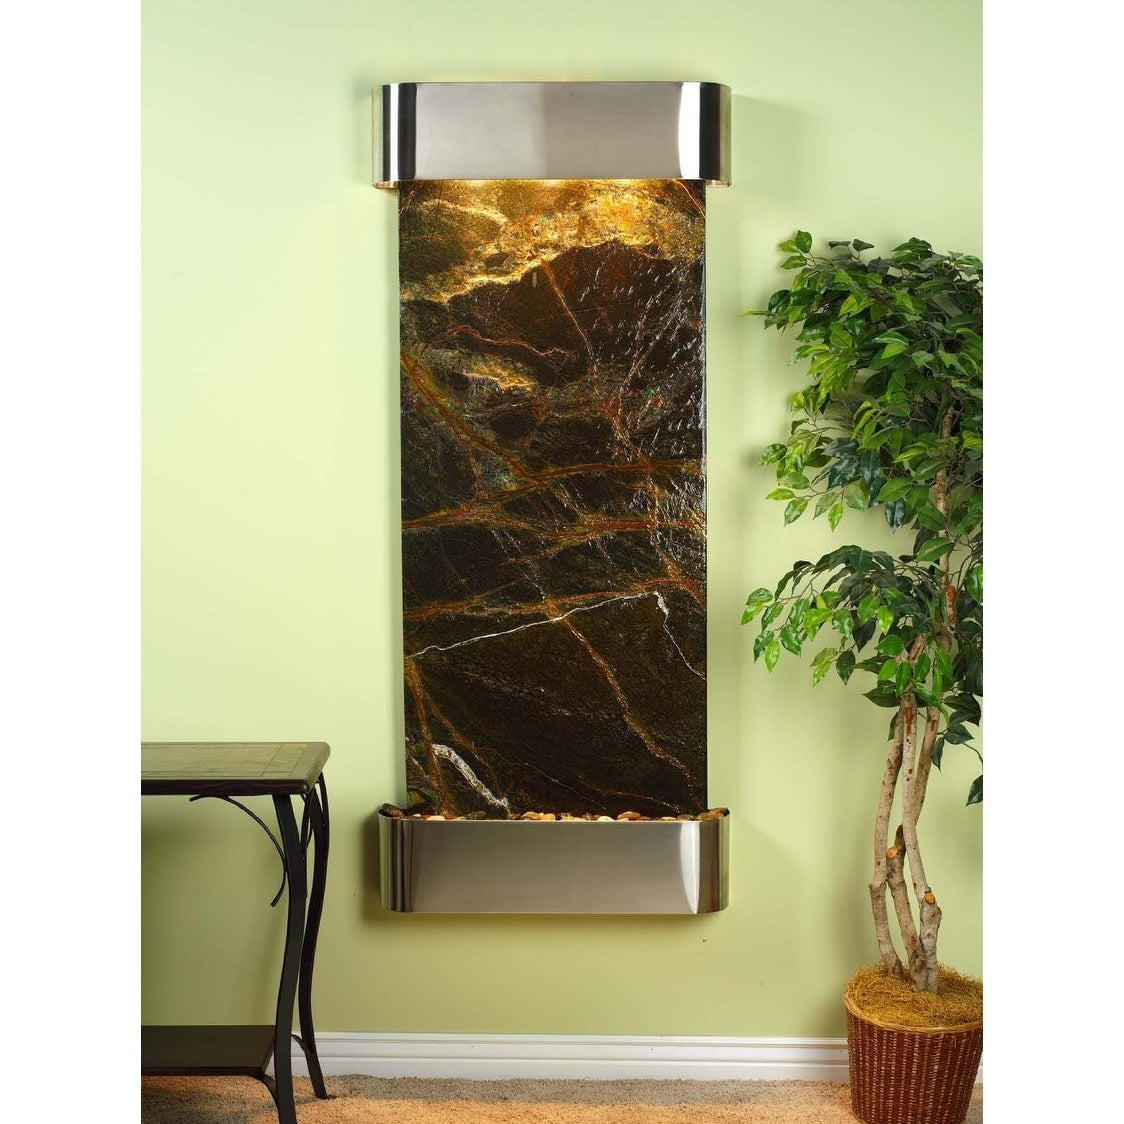 Adagio Inspiration Falls Fountain w/ Green Rainforest Marble in Stainless Steel - Thumbnail 0